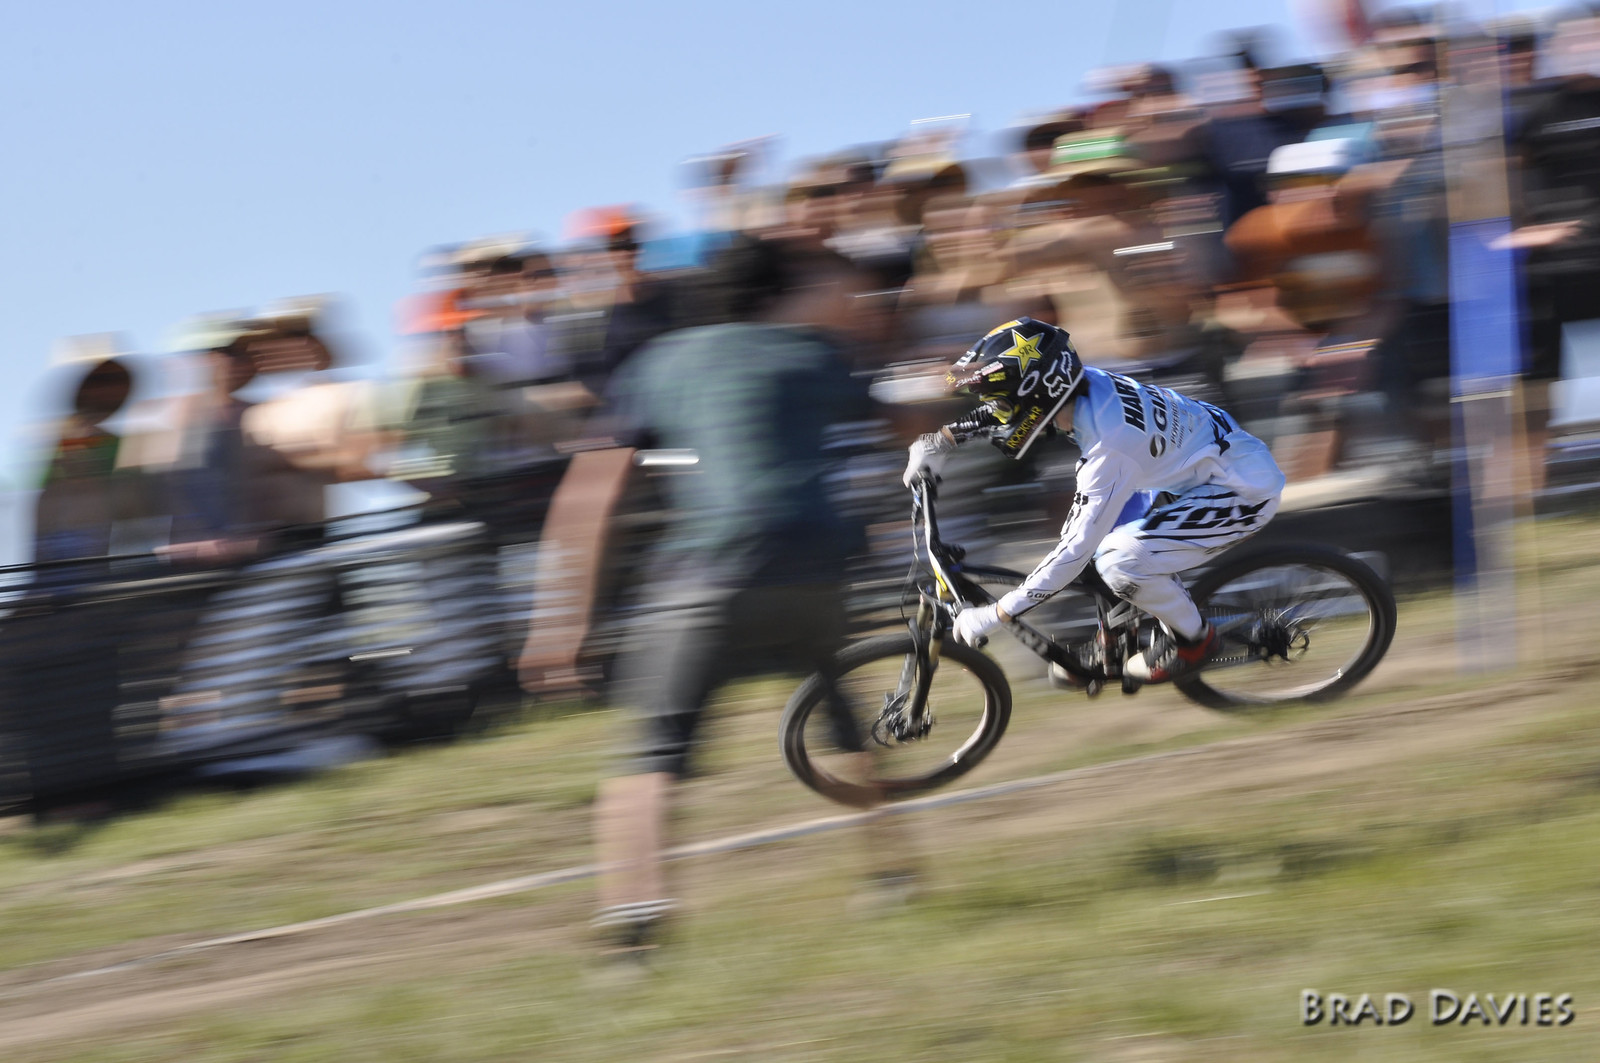 4th place went to Danny Hart - HourGlassPhotos - Mountain Biking Pictures - Vital MTB